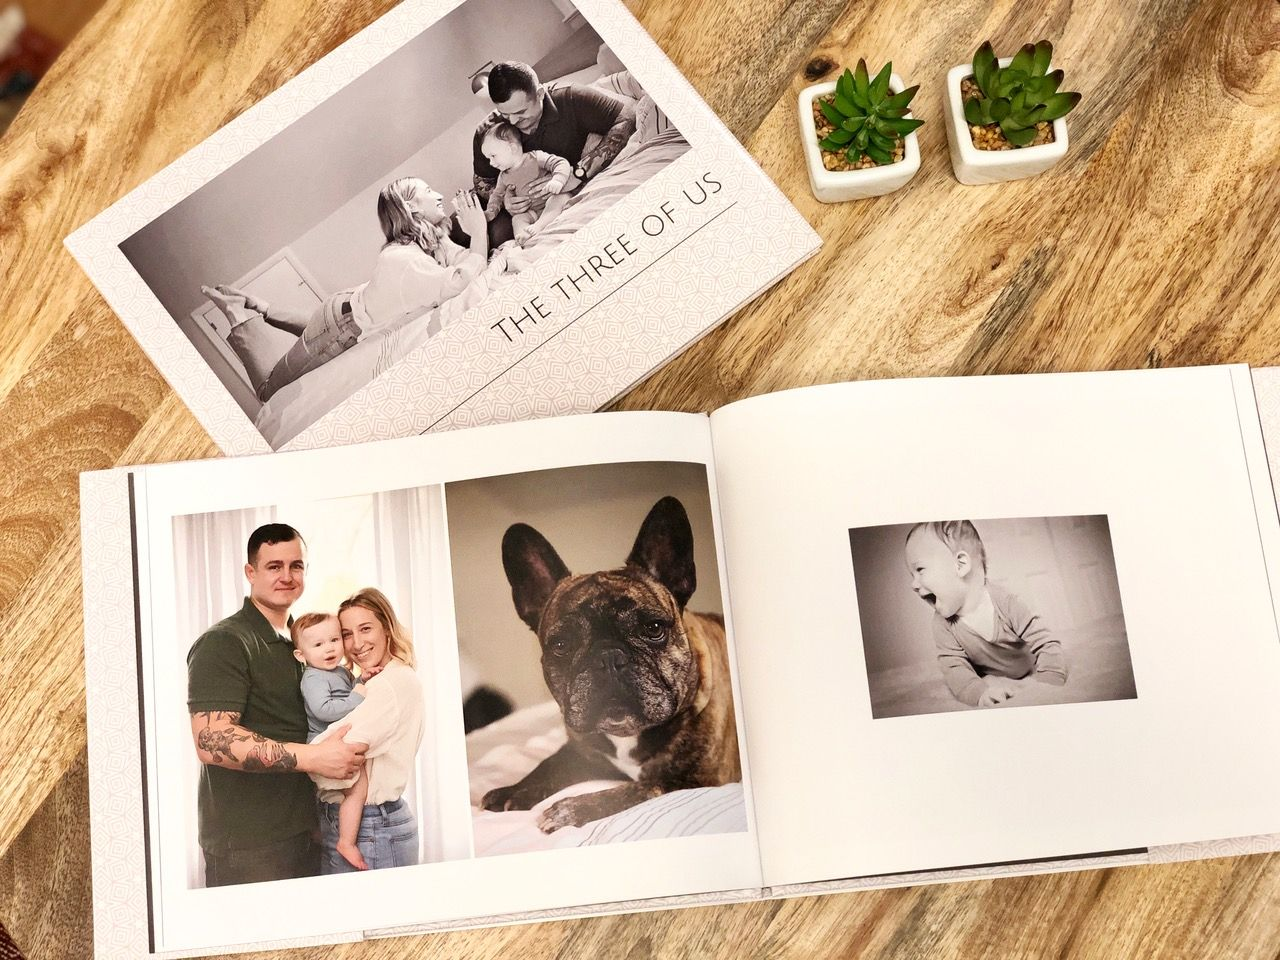 Gift the grandparents with an updated family photo album showing your love and gratitude